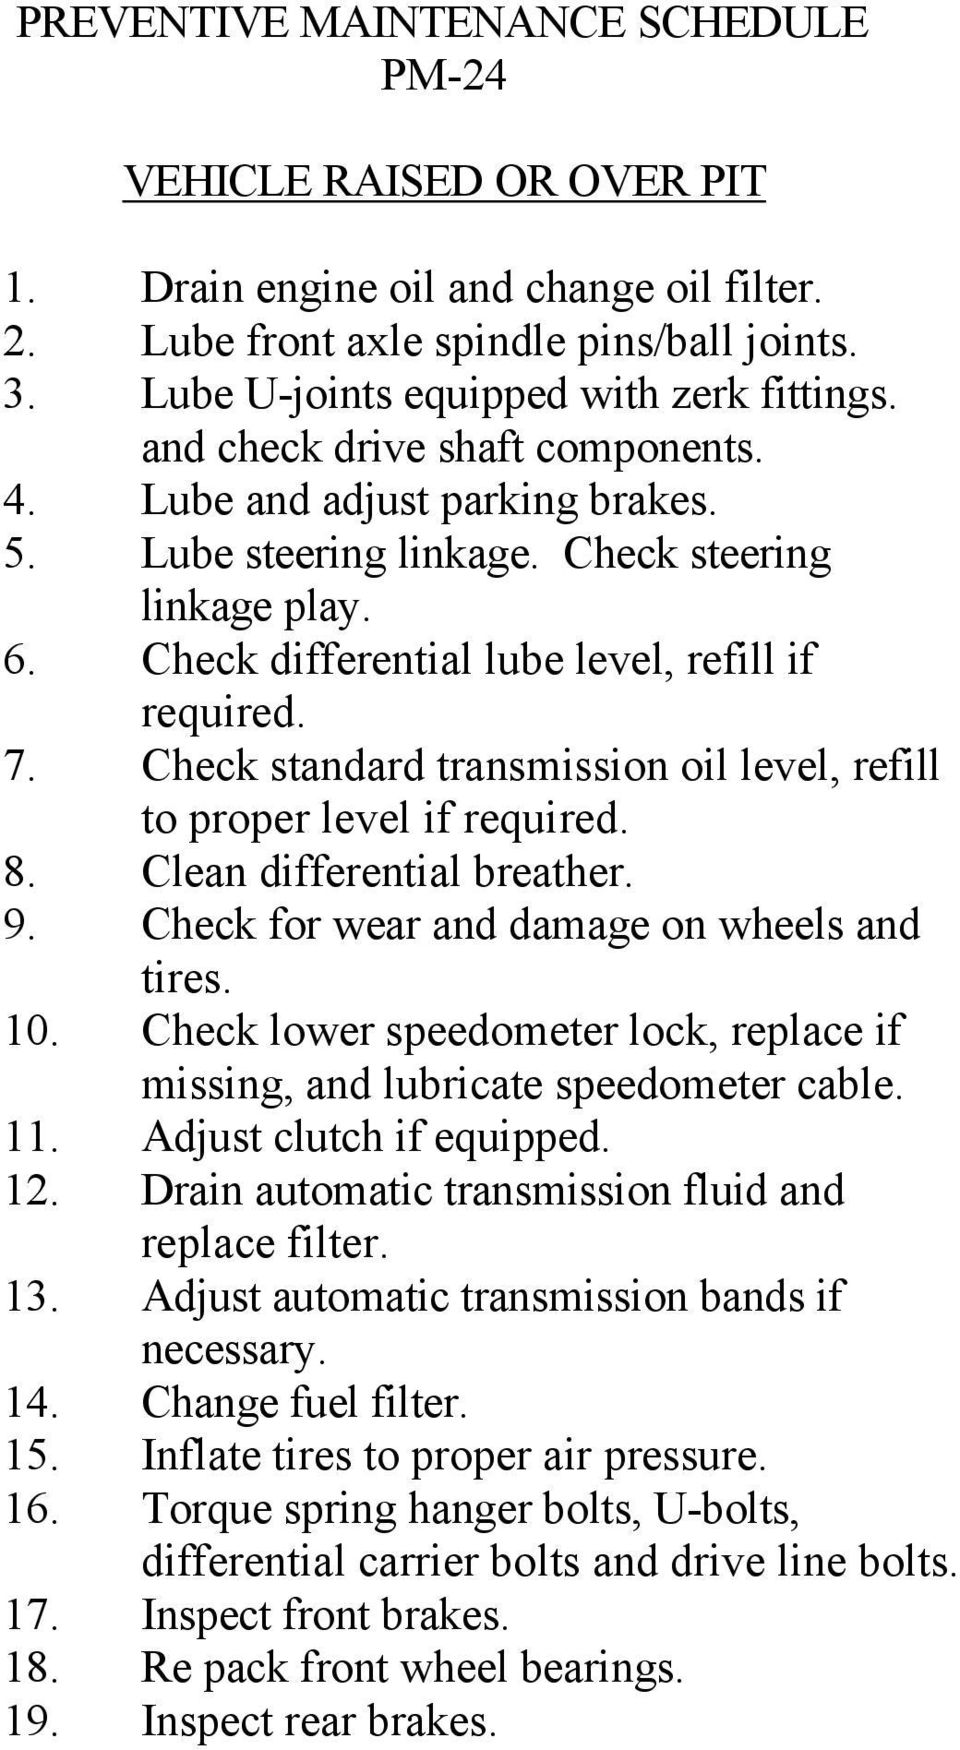 Check standard transmission oil level, refill to proper level if required. 8. Clean differential breather. 9. Check for wear and damage on wheels and tires. 10.